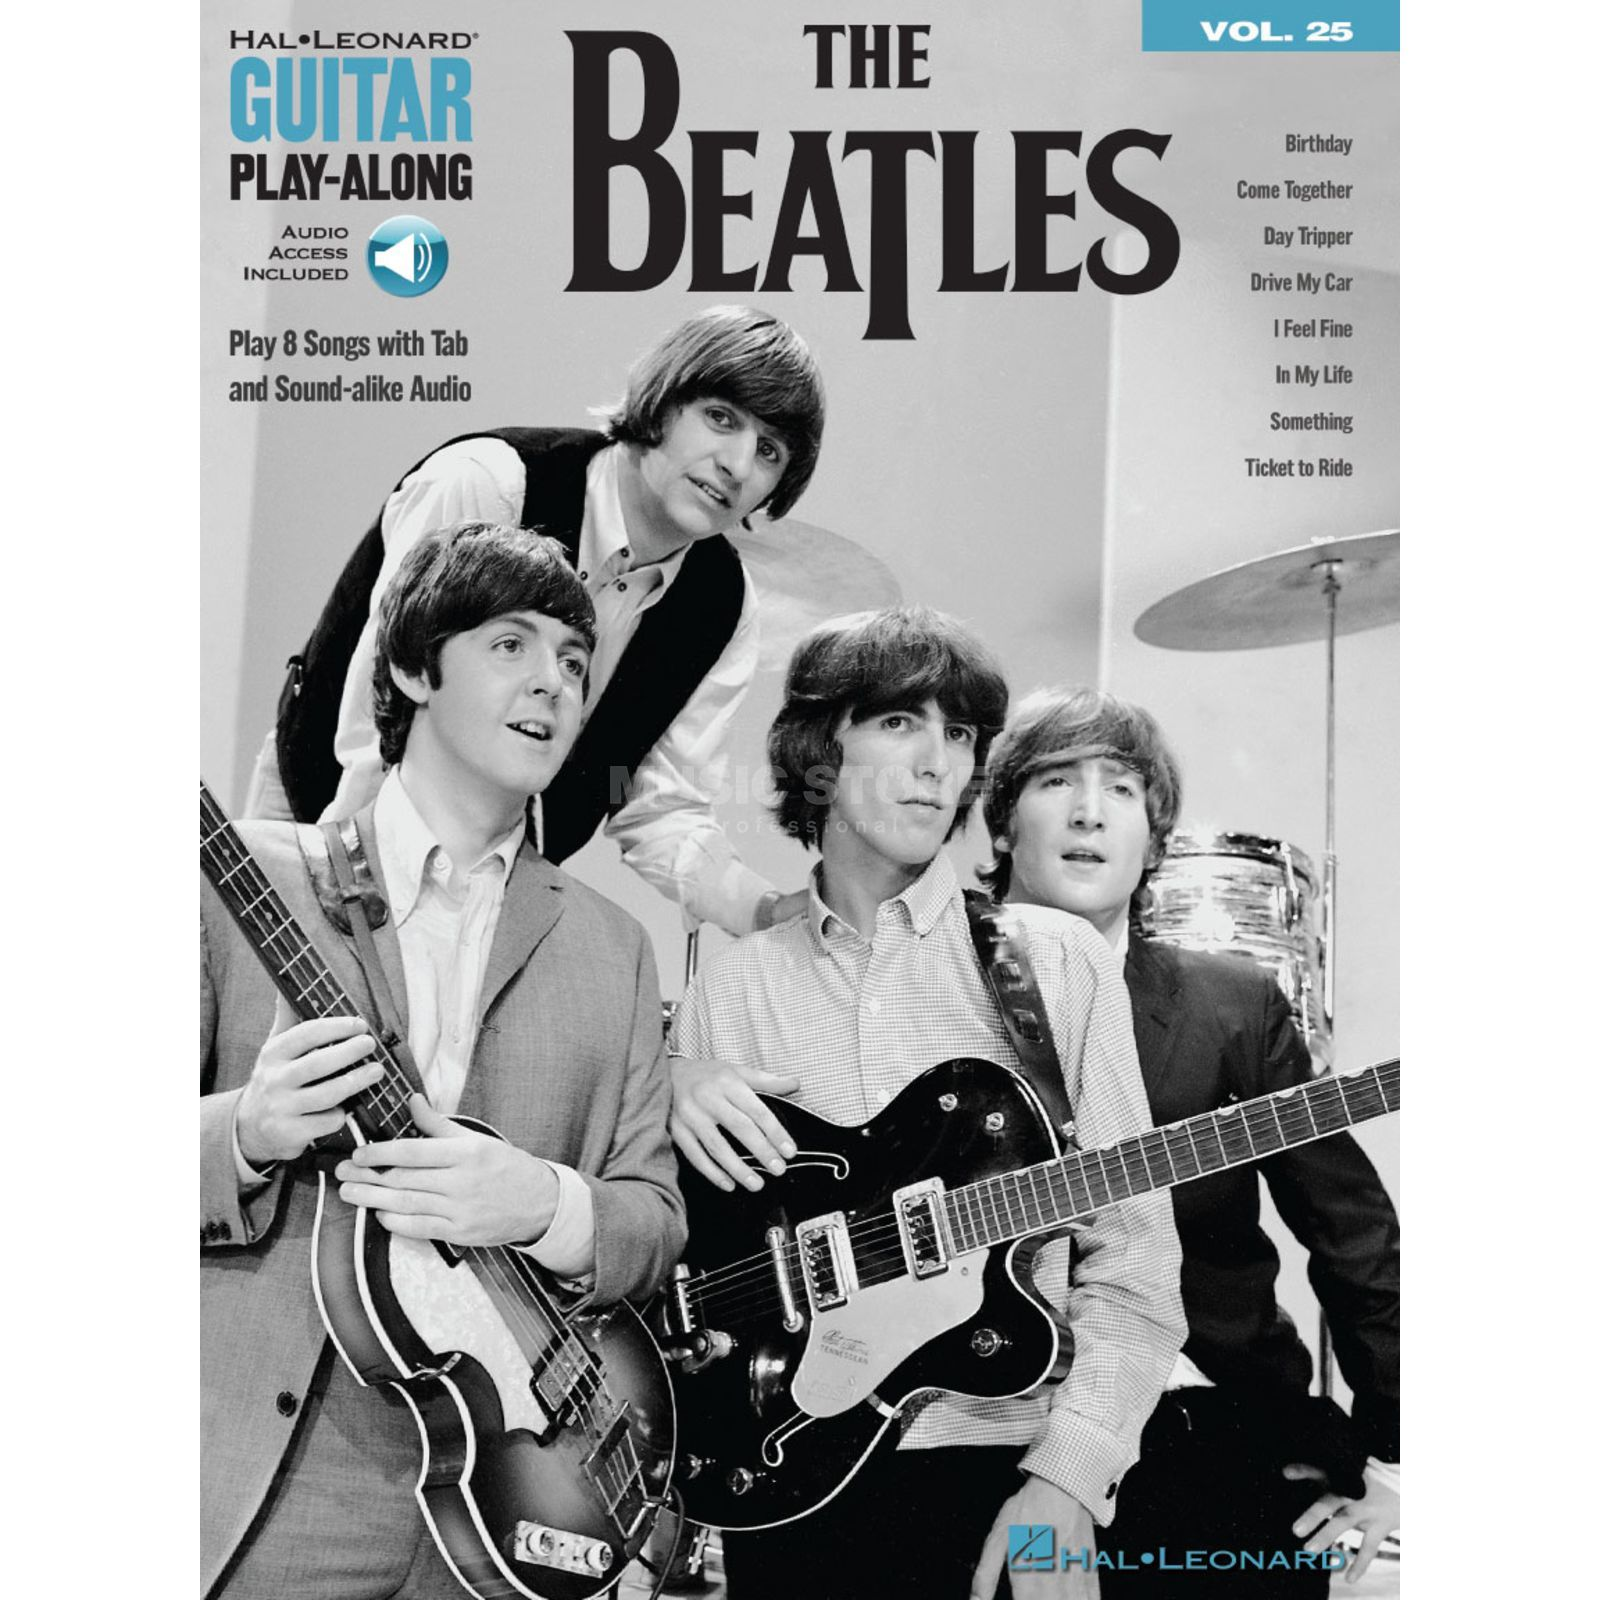 Hal Leonard Guitar Play-Along Volume 25: The Beatles Imagem do produto